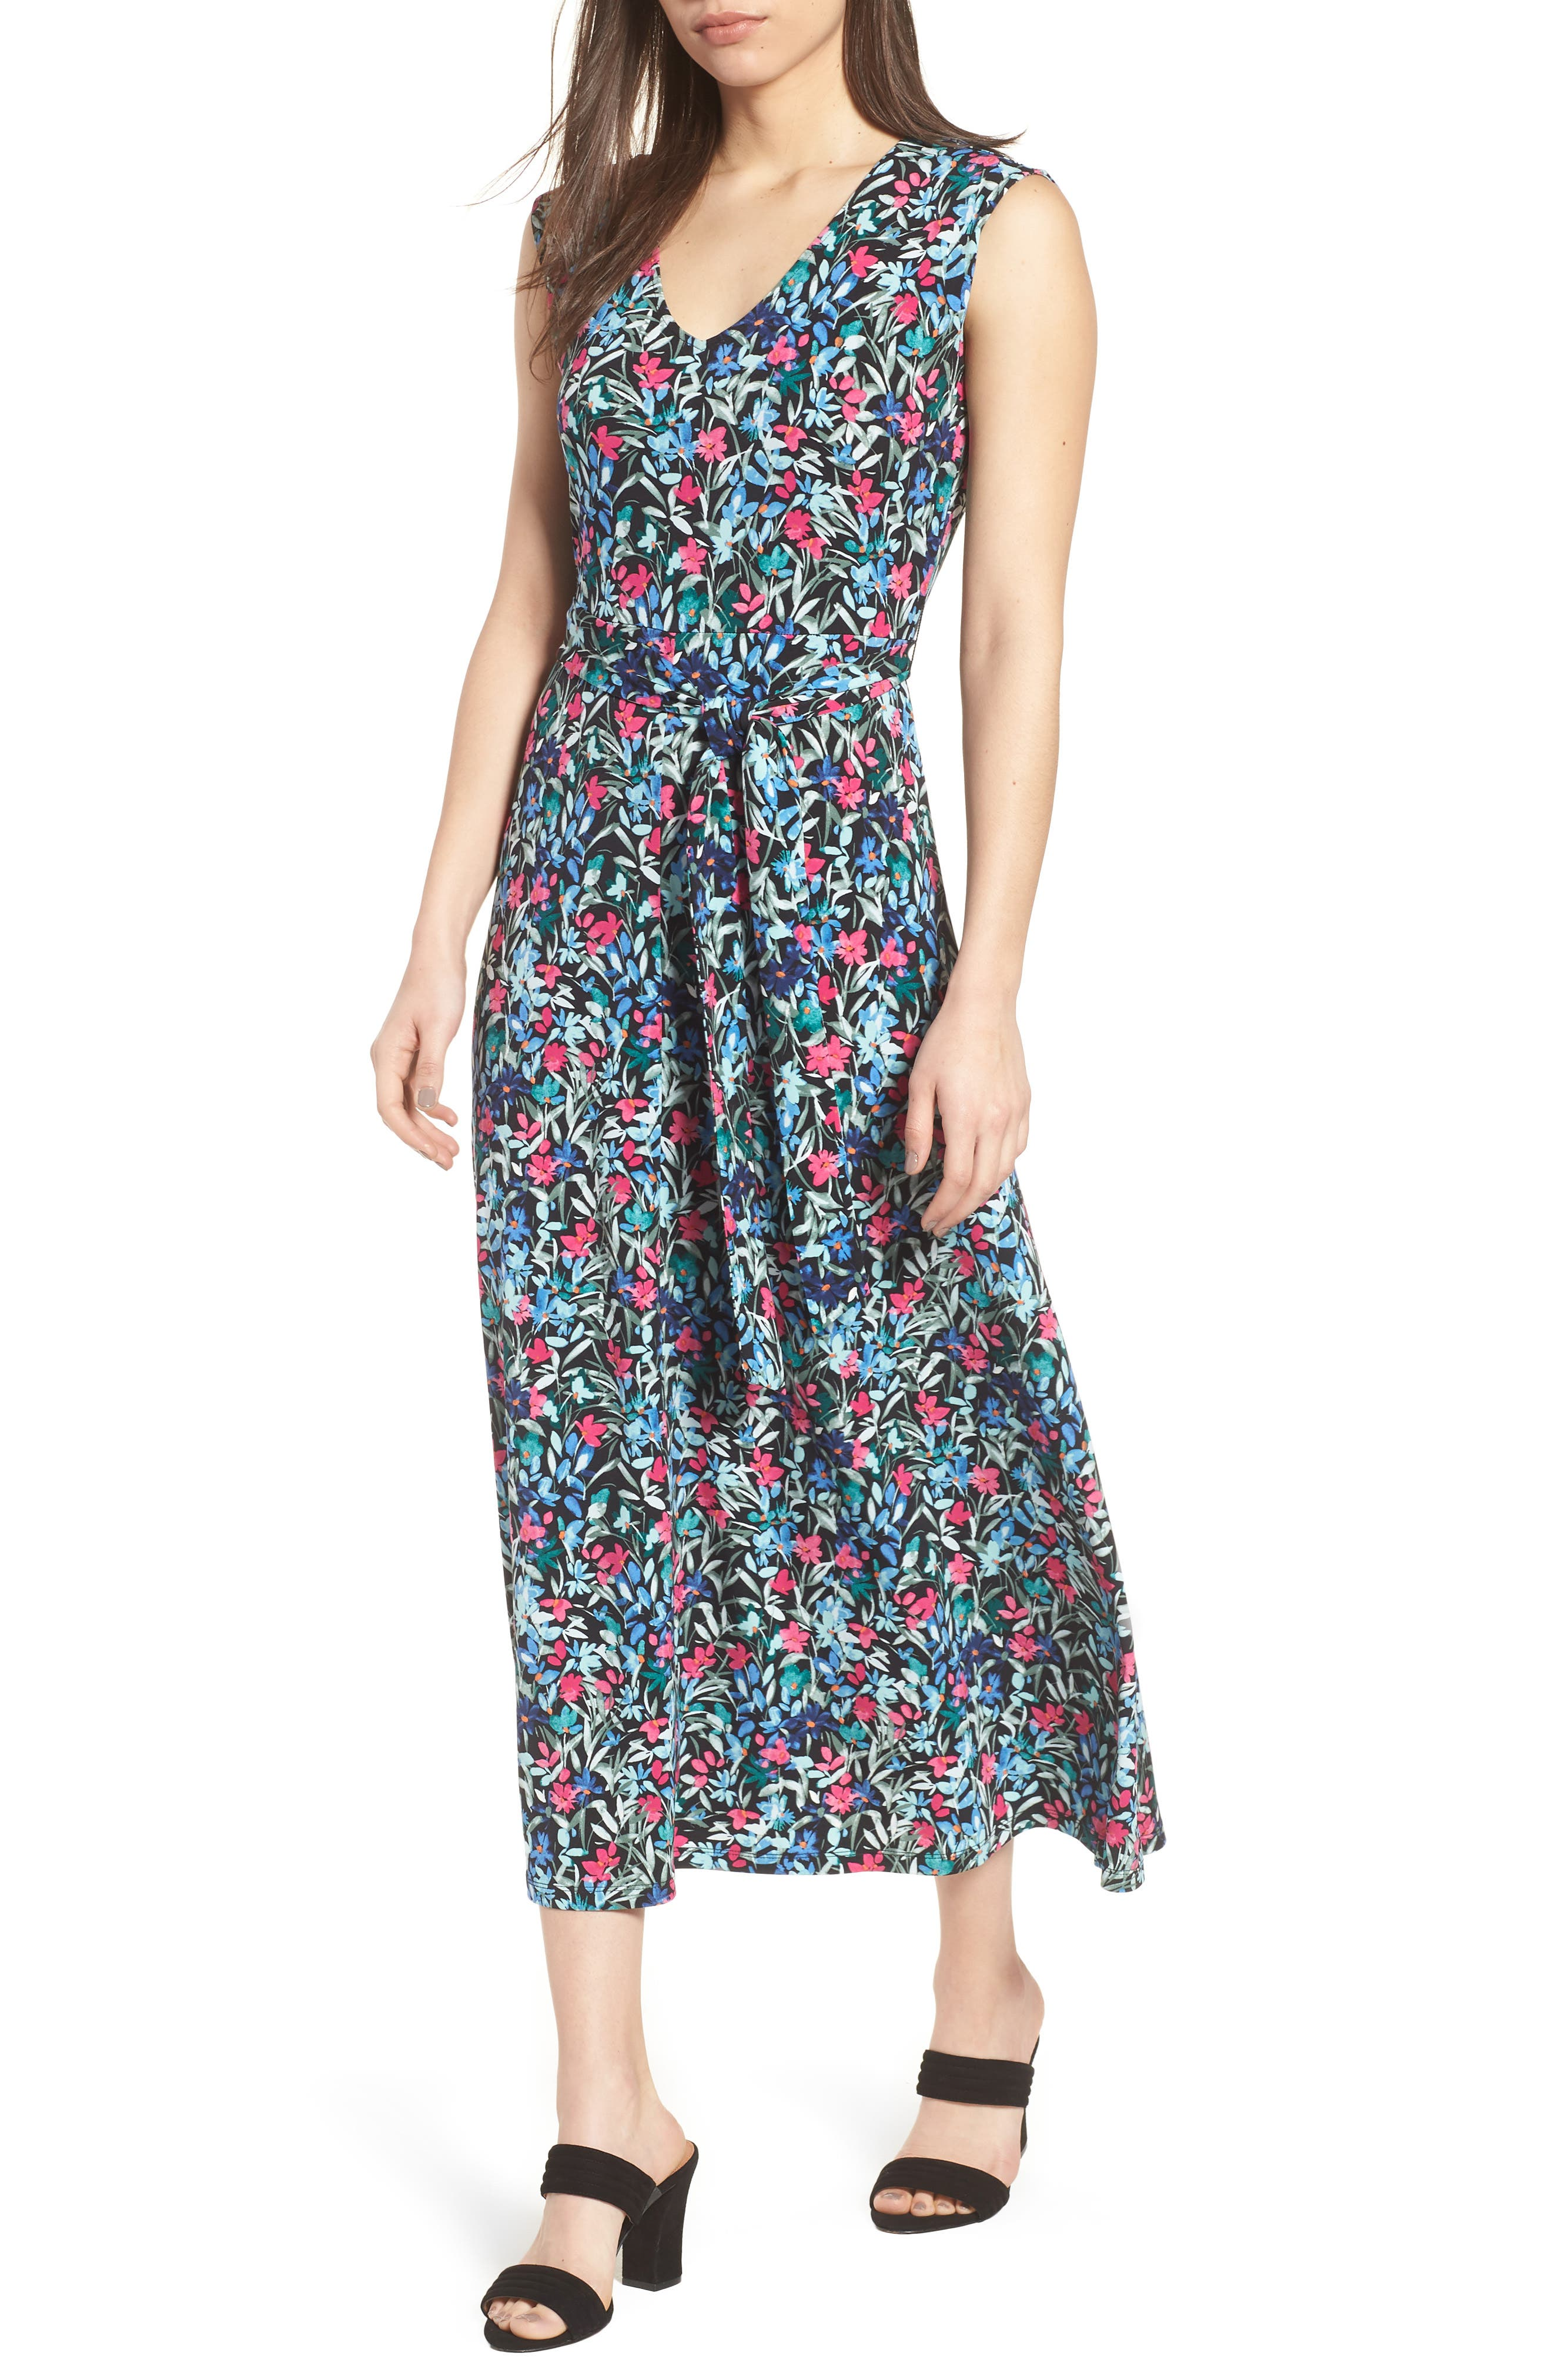 Radiant Flowers Sleeveless Tie Waist Dress,                             Main thumbnail 1, color,                             001